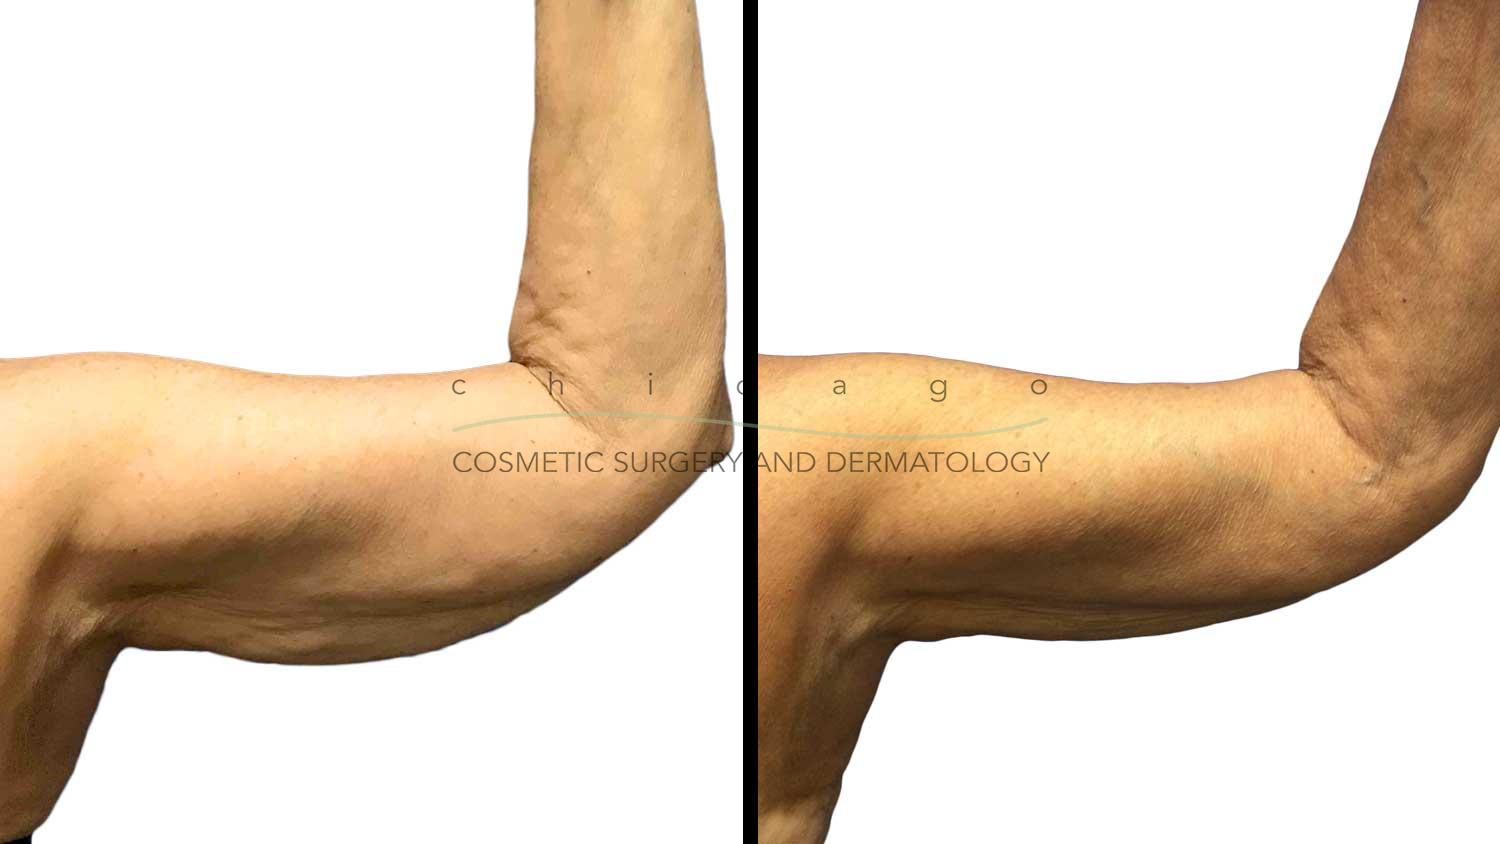 CoolSculpting for arms before and after